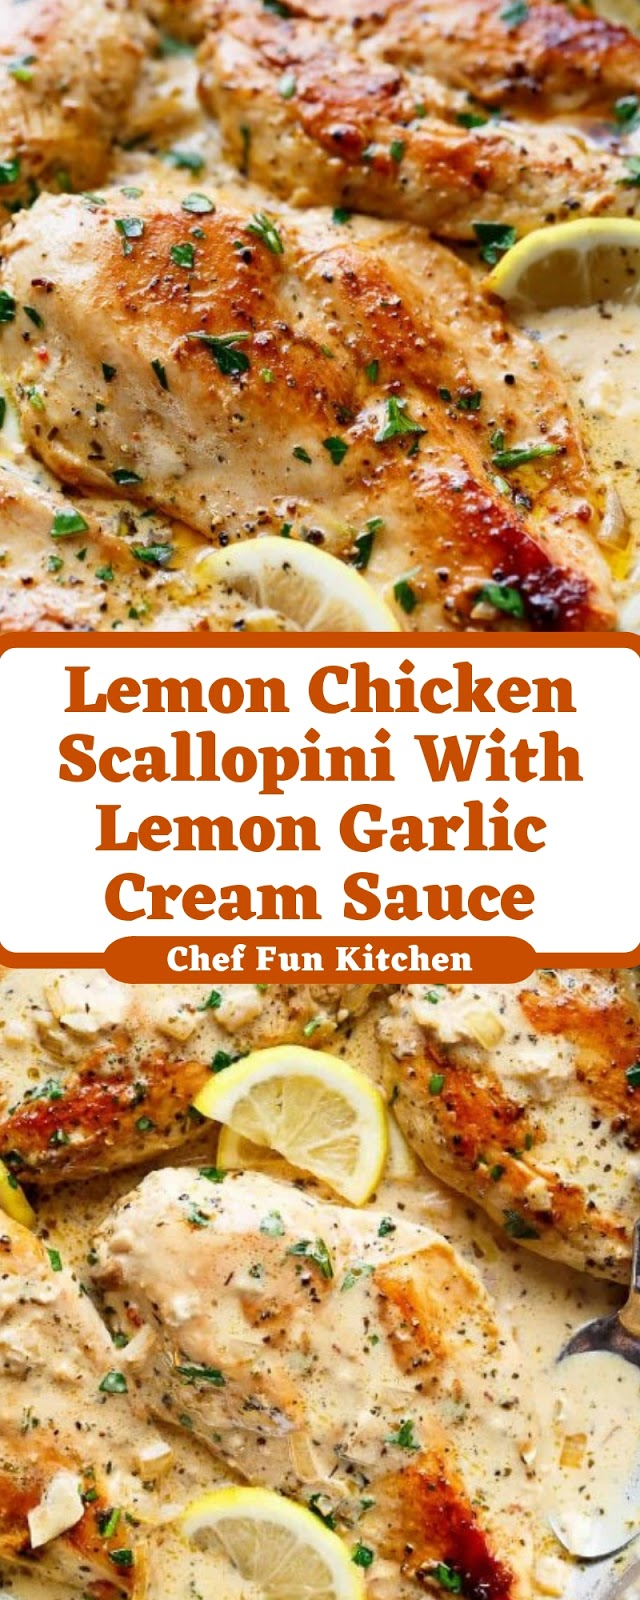 Lemon Chicken Scallopini With Lemon Garlic Cream Sauce